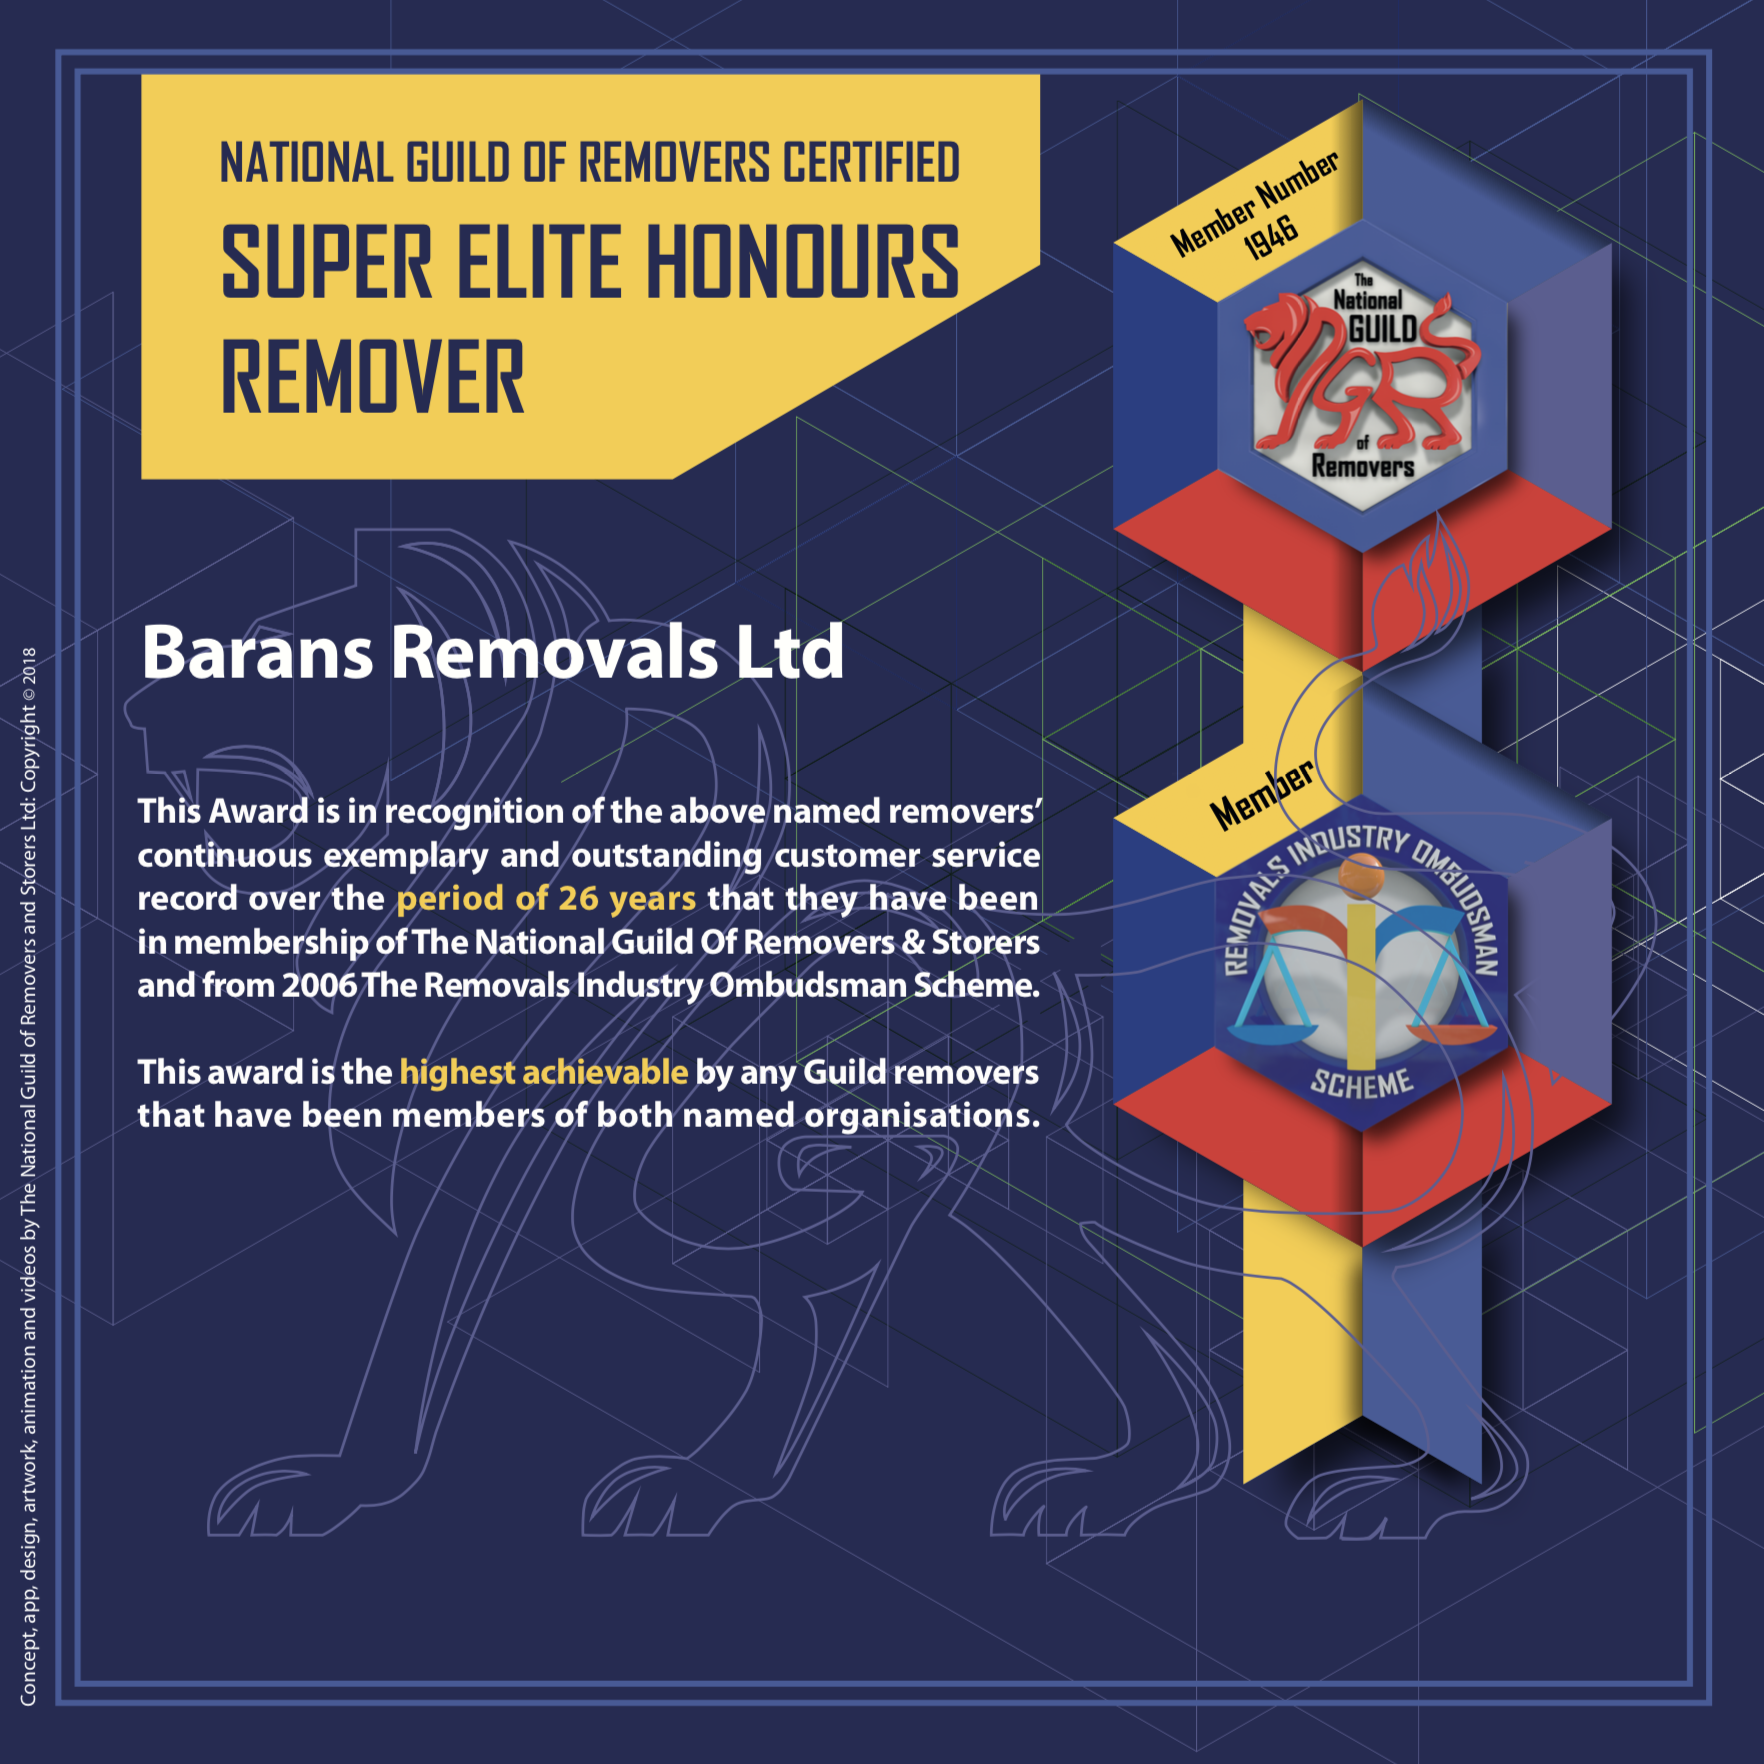 Super Elite Honours Remover